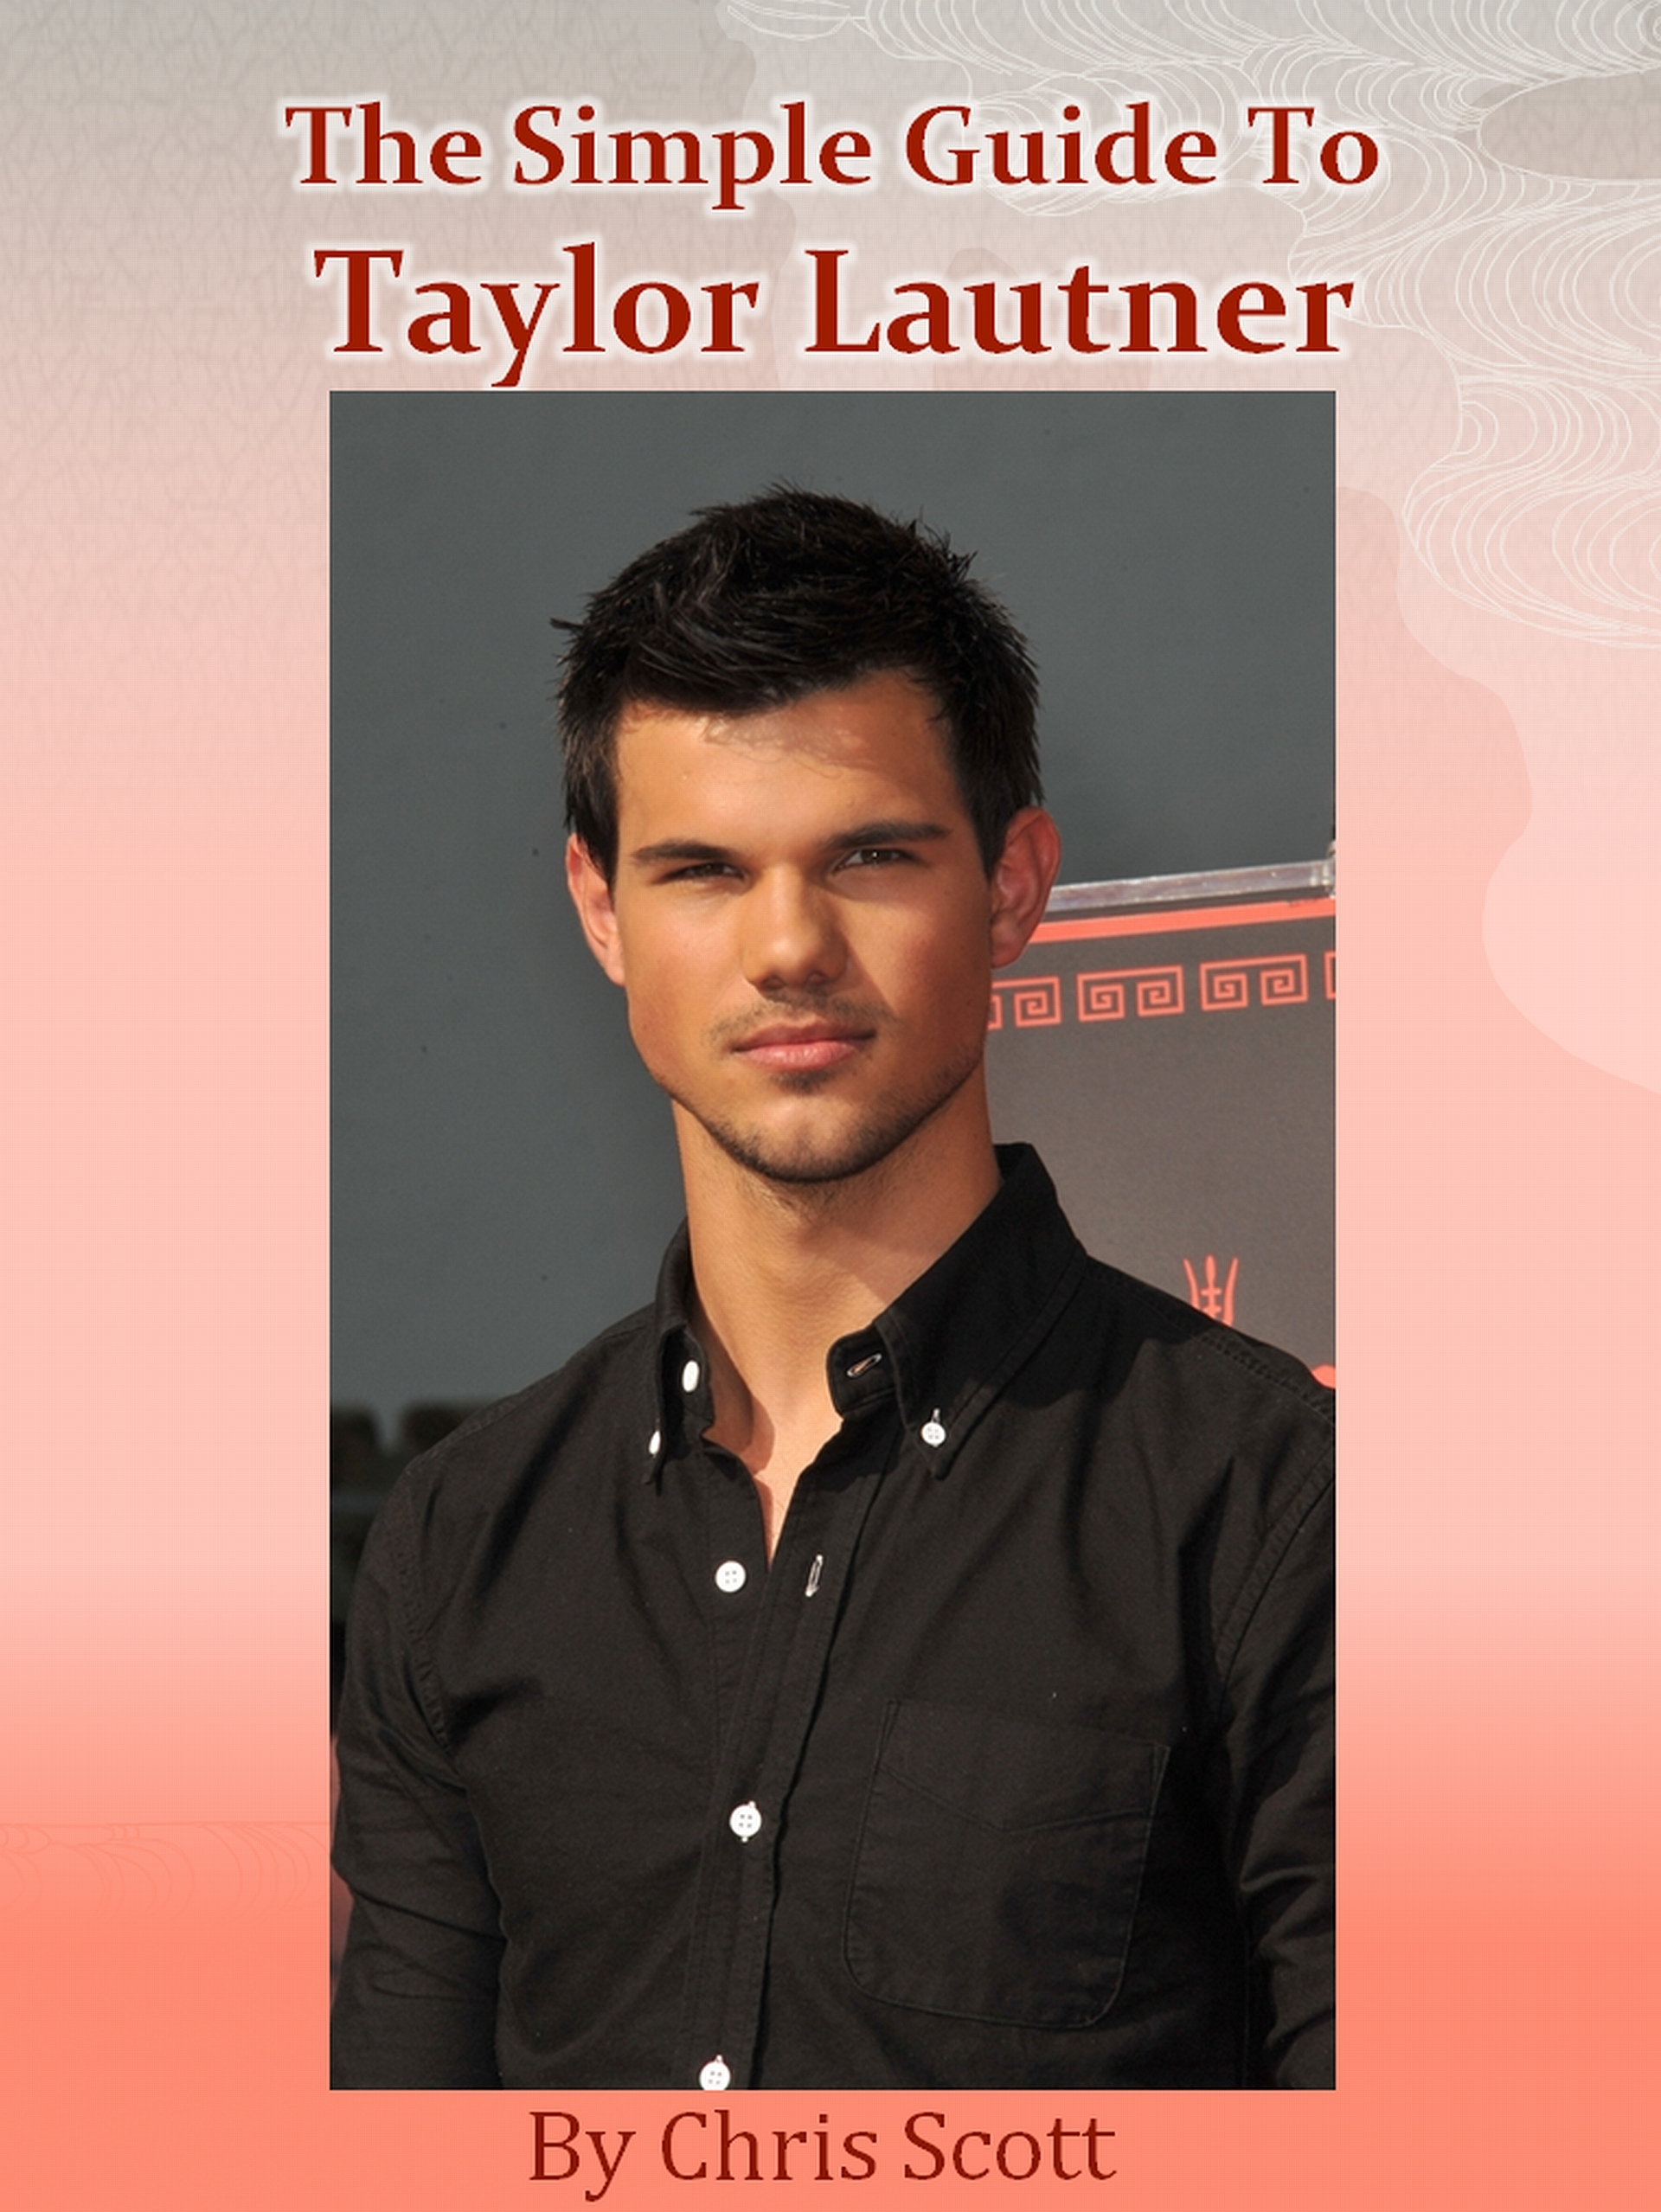 The Simple Guide To Taylor Lautner